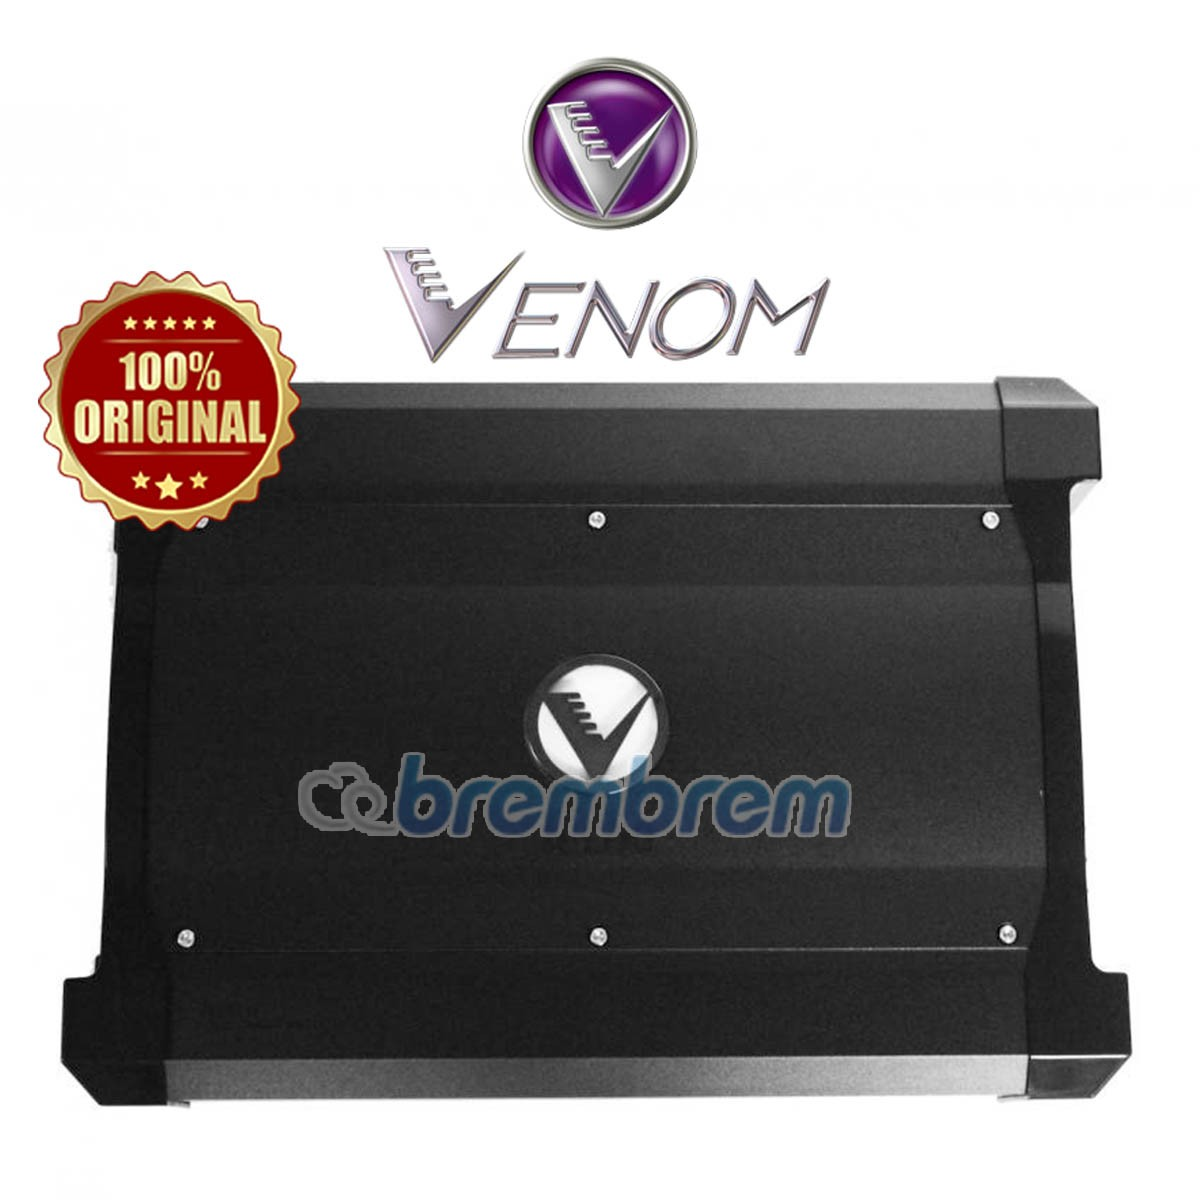 VENOM TURBO SERIES V406TO - POWER 4 CHANNEL